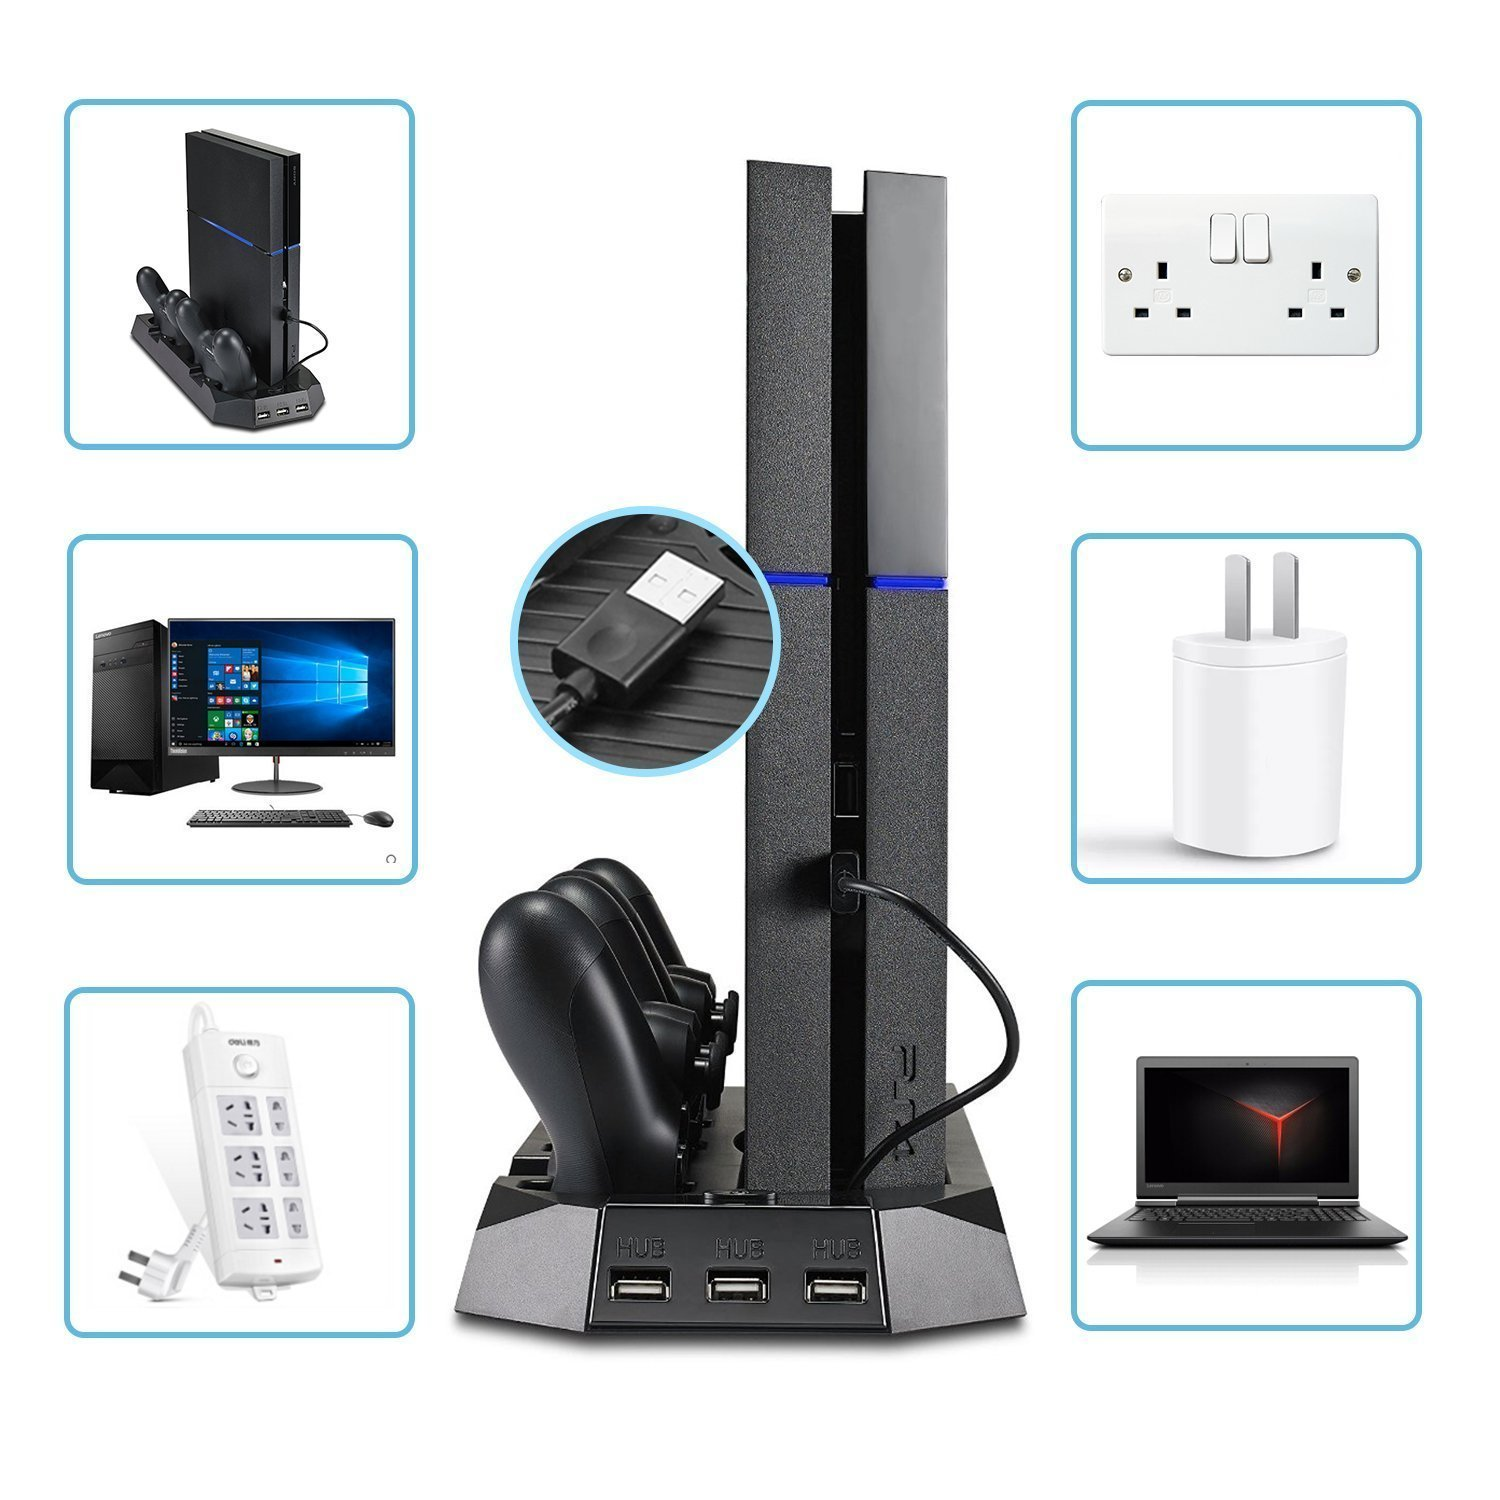 Galleon Pecham Vertical Stand For Ps4 Slim Ps4 With